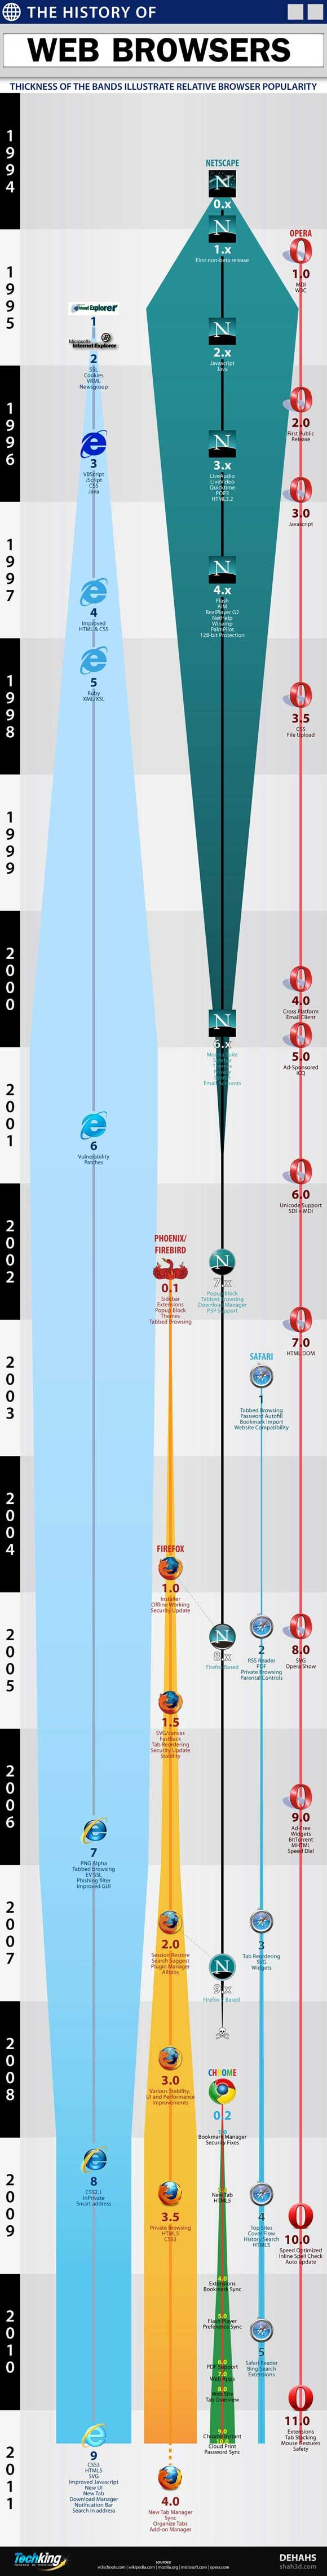 The history of web browsers.